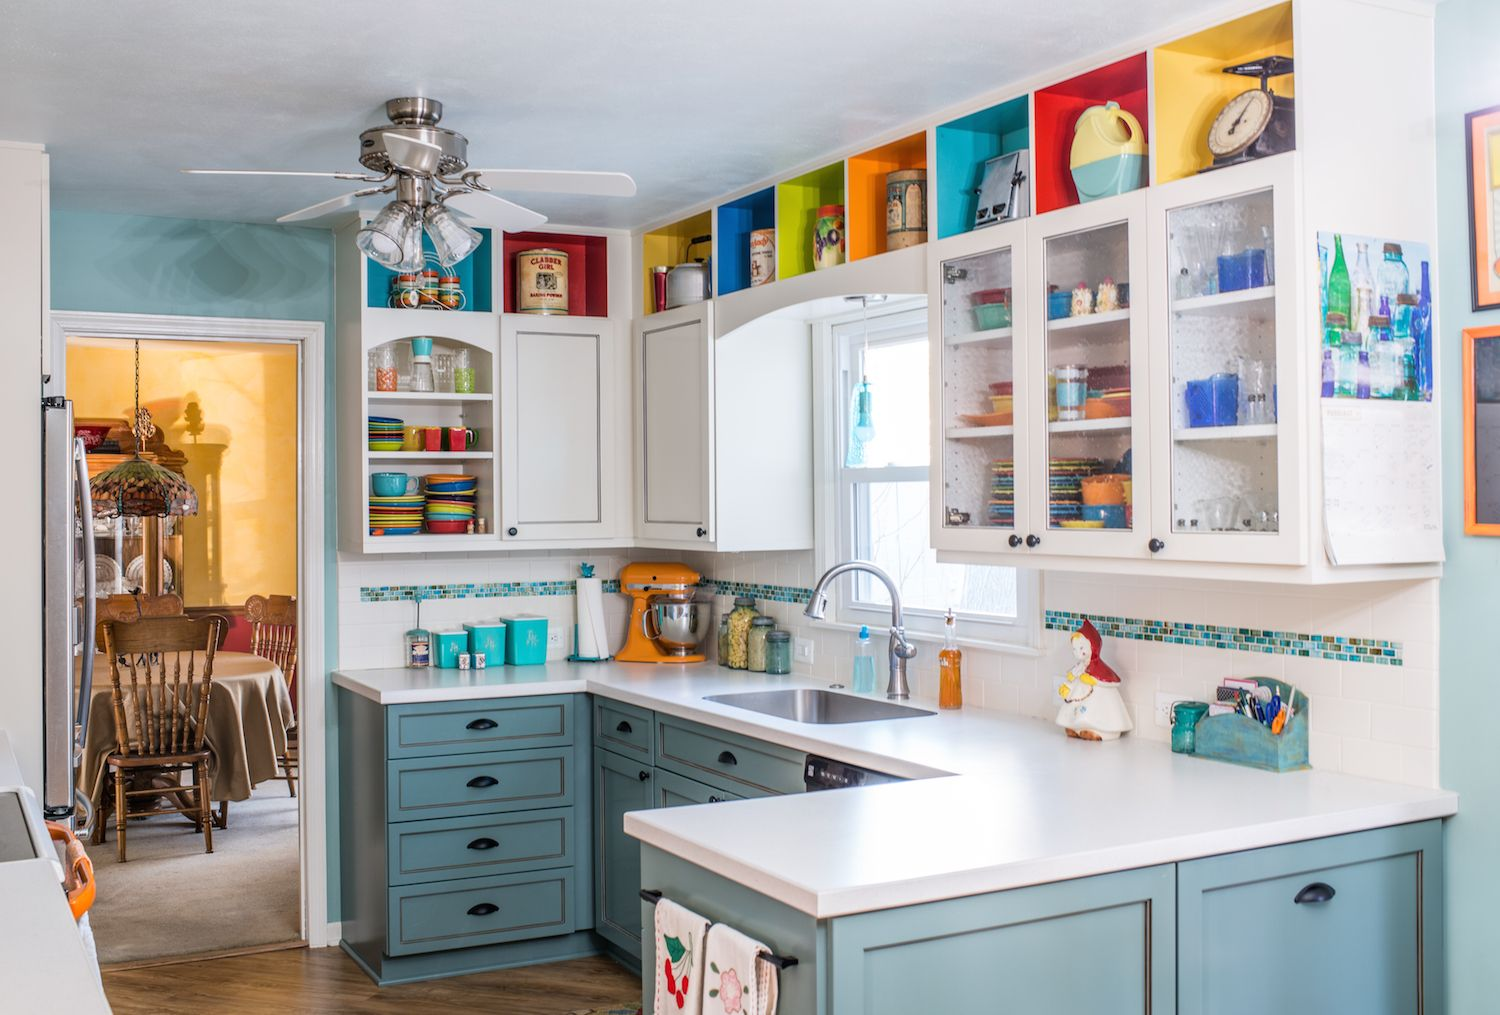 Kitchens In Bloom The Stock S Kitchen Como Living Magazine Kitchen Decor Trends Quirky Kitchen Decor Quirky Kitchen